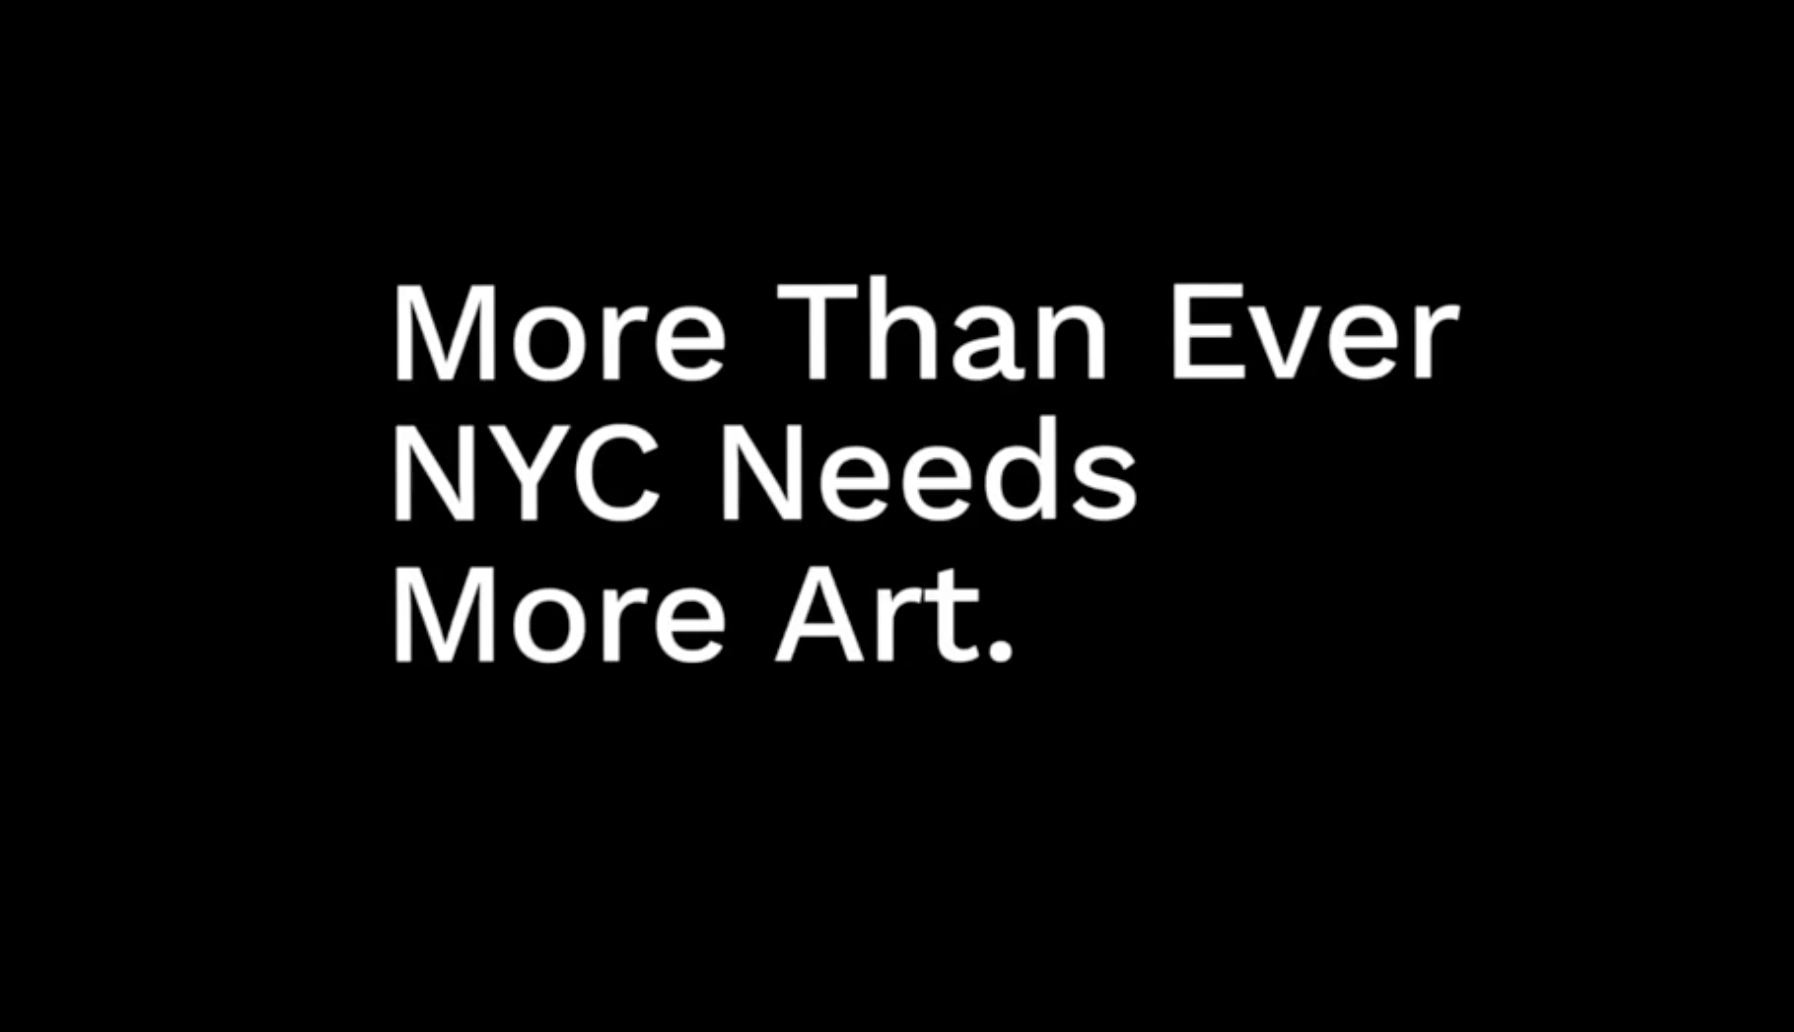 """A black box with white text that reads """"More than ever NYC needs More Art."""